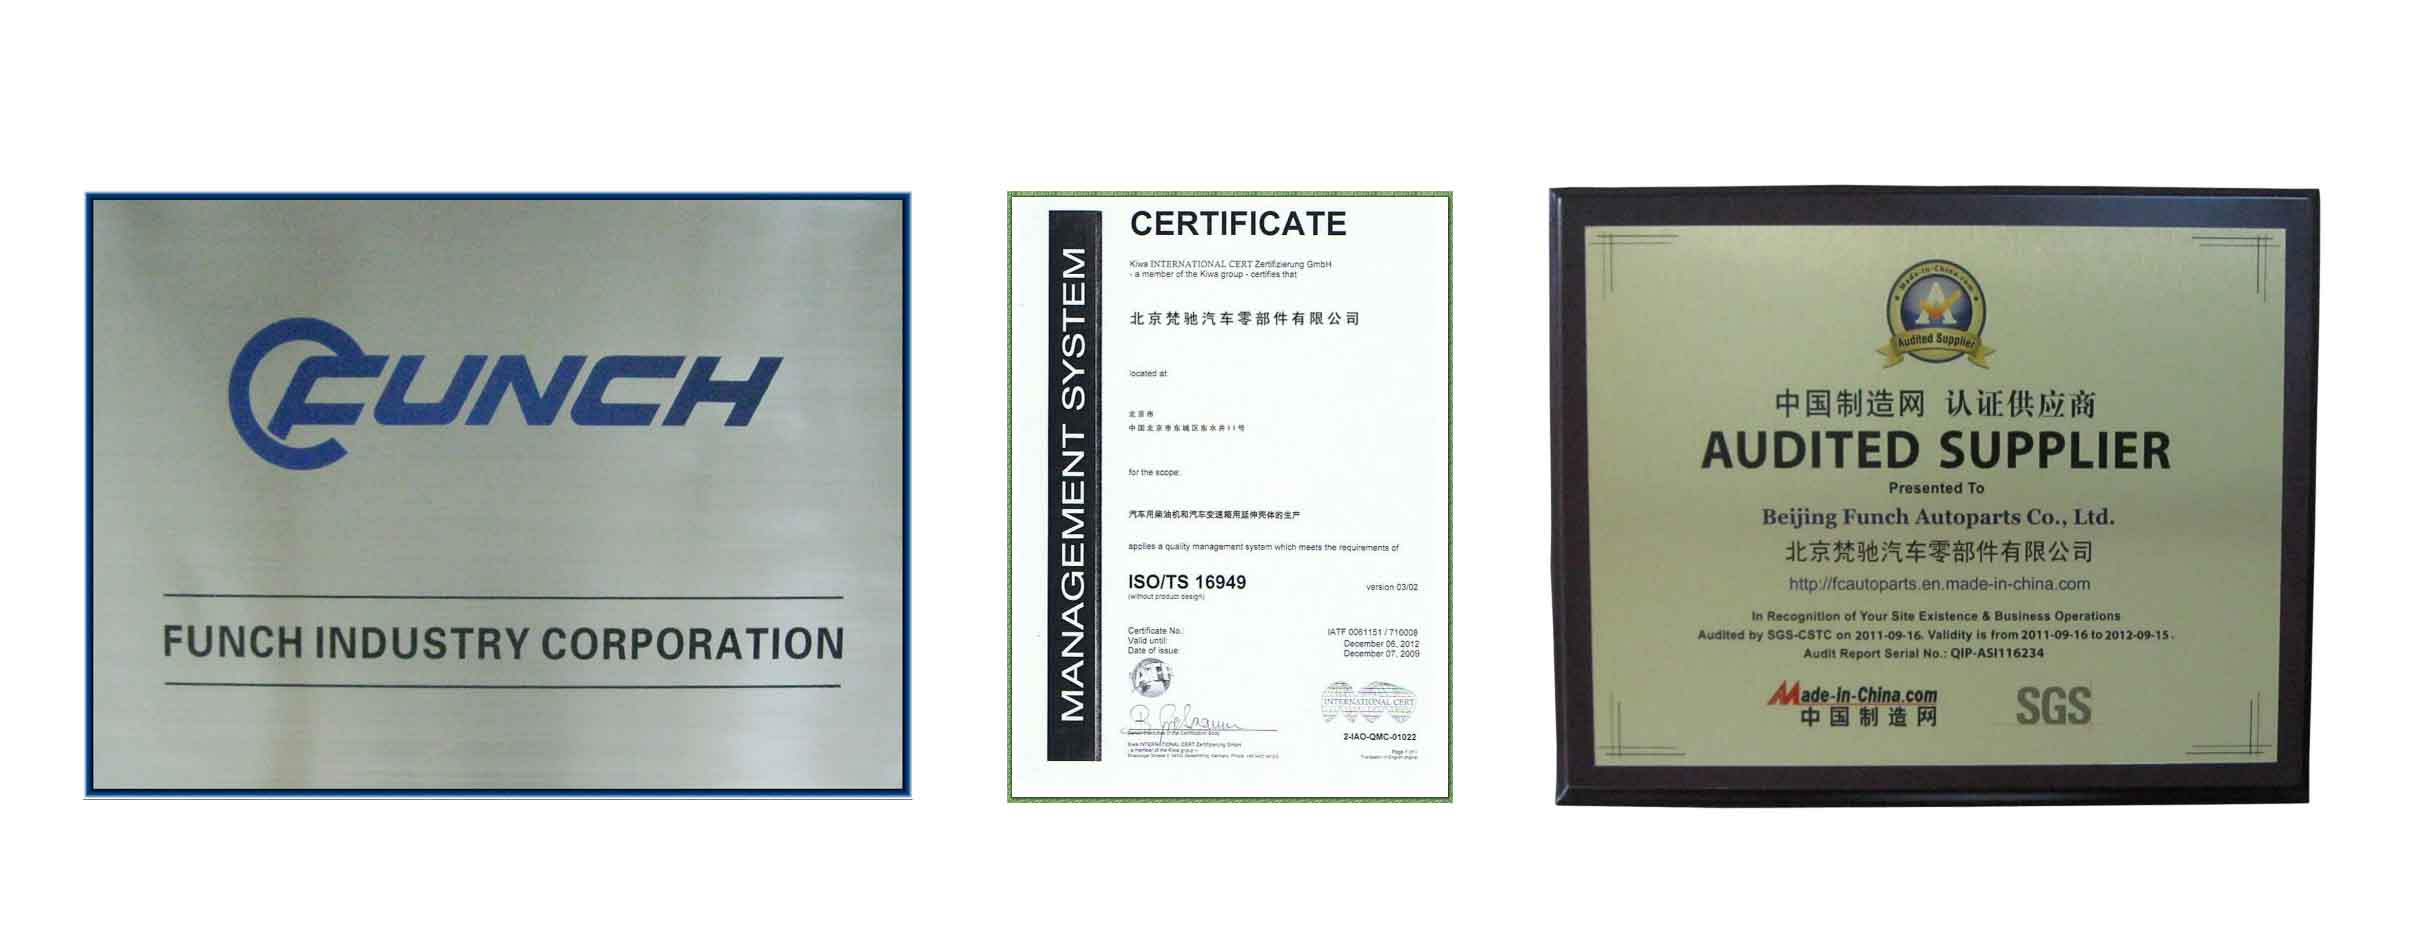 We Approved Ts16949 Quality System Certification and SGS Related Certification.